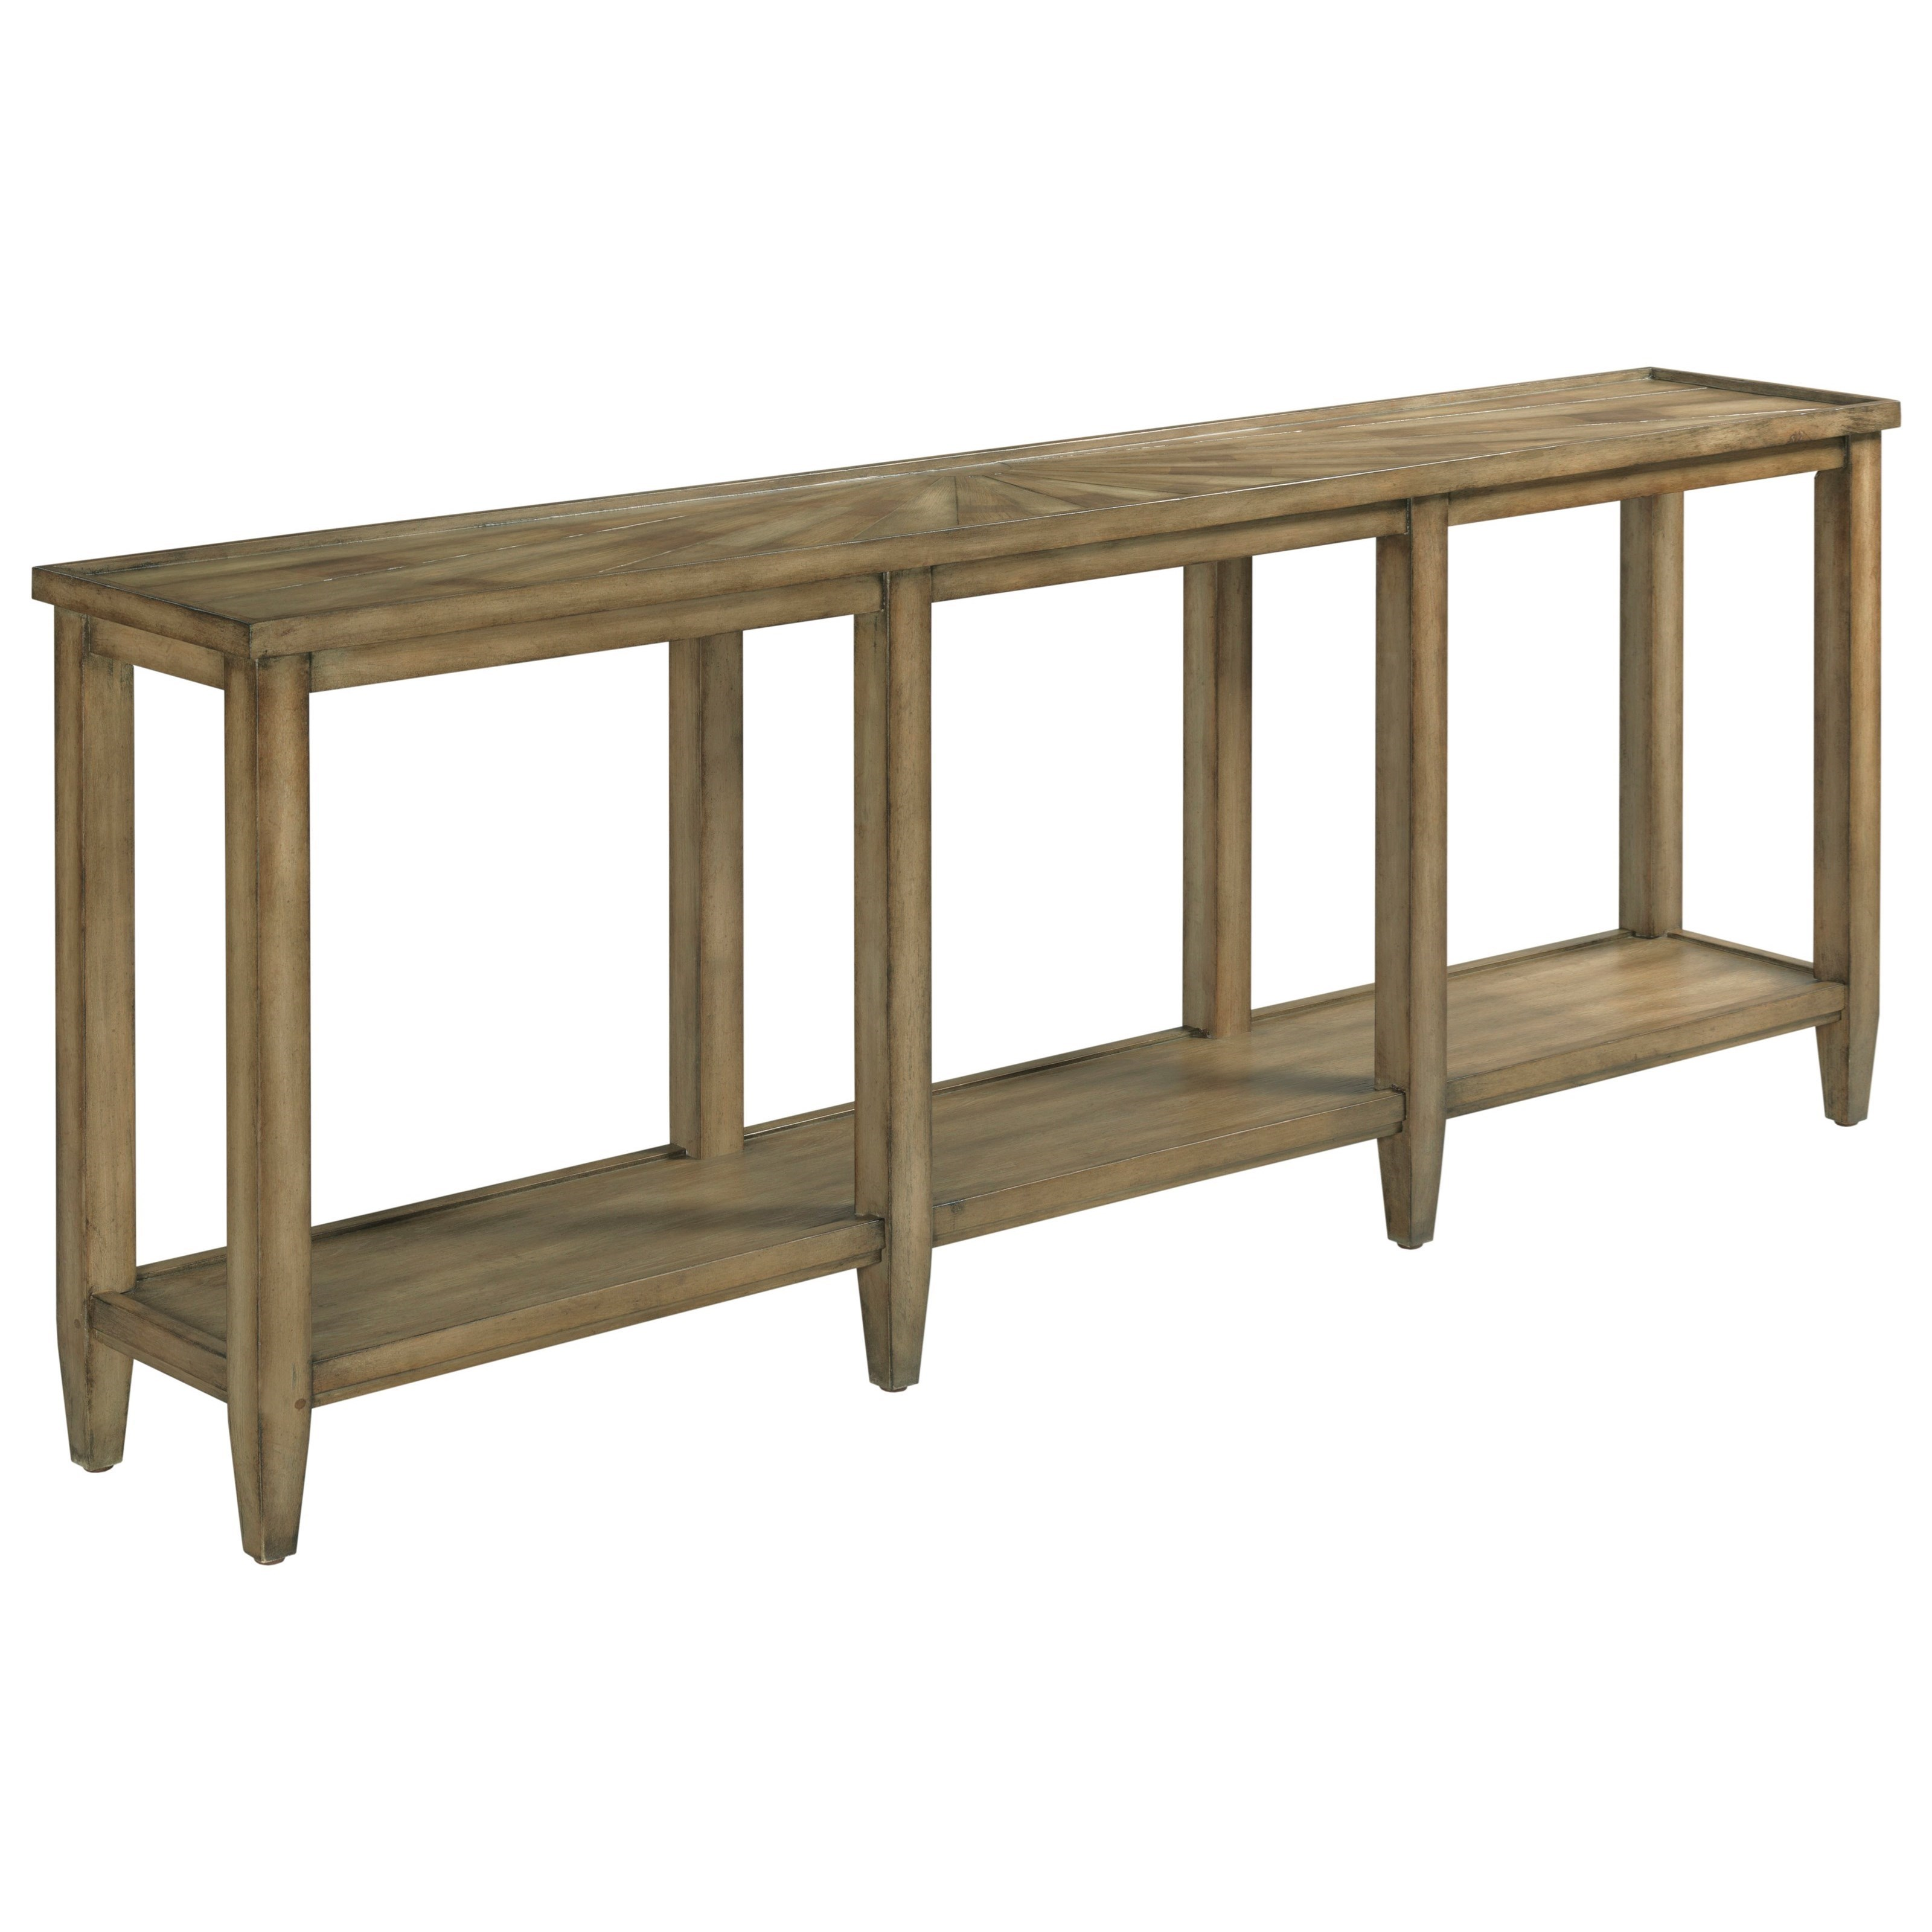 Transitional Sofa Table with Shelf